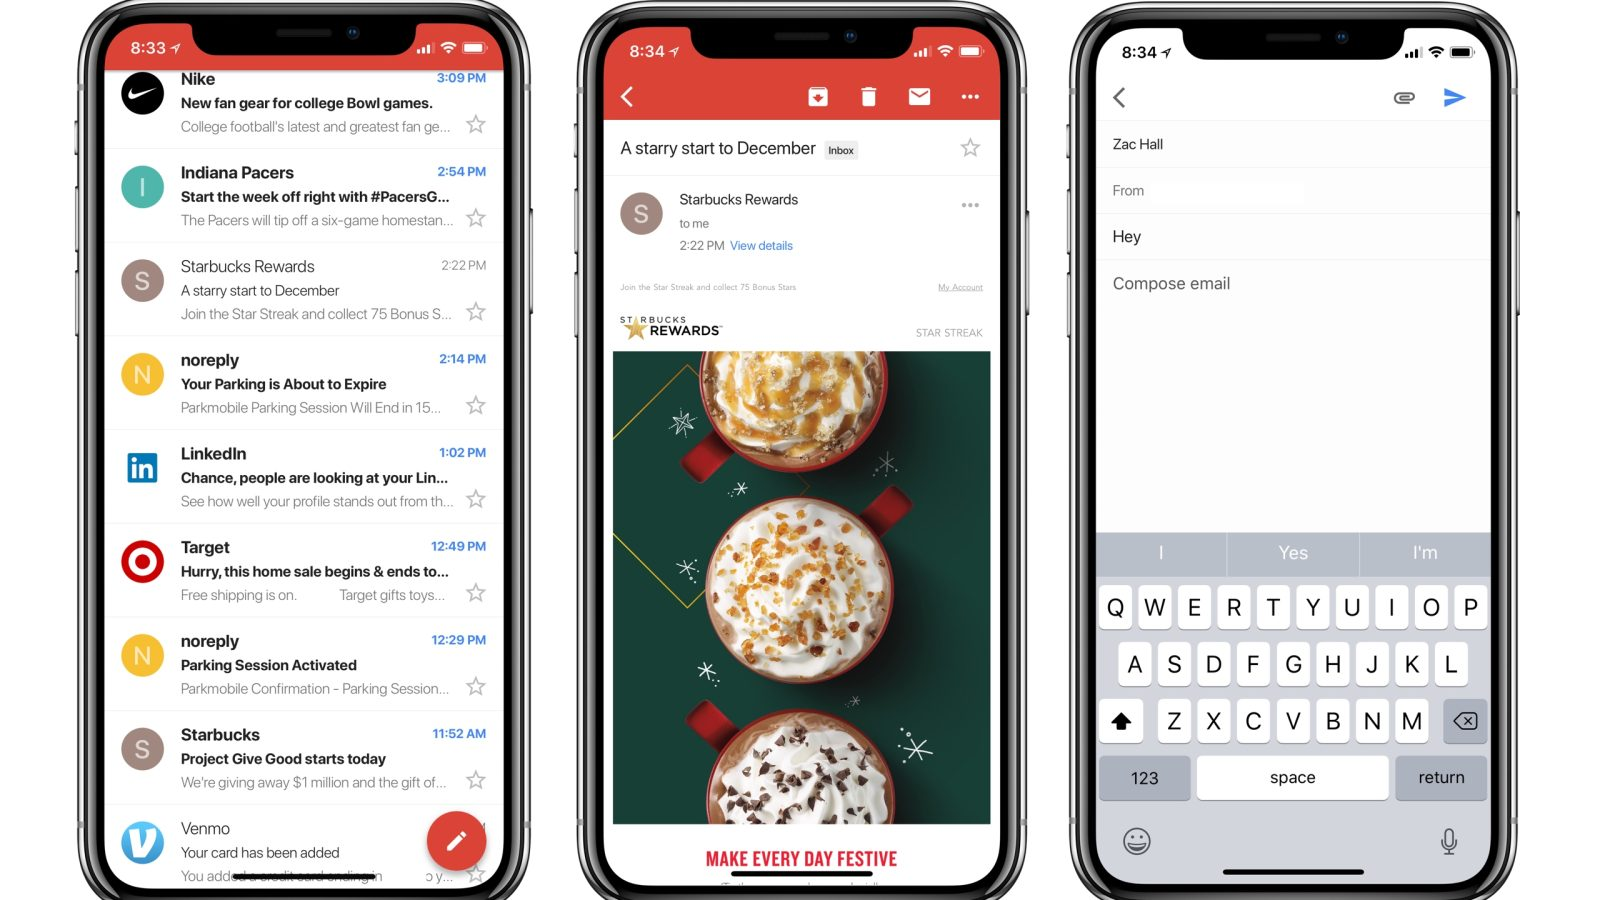 Gmail app adds support for iPhone X, third-party accounts